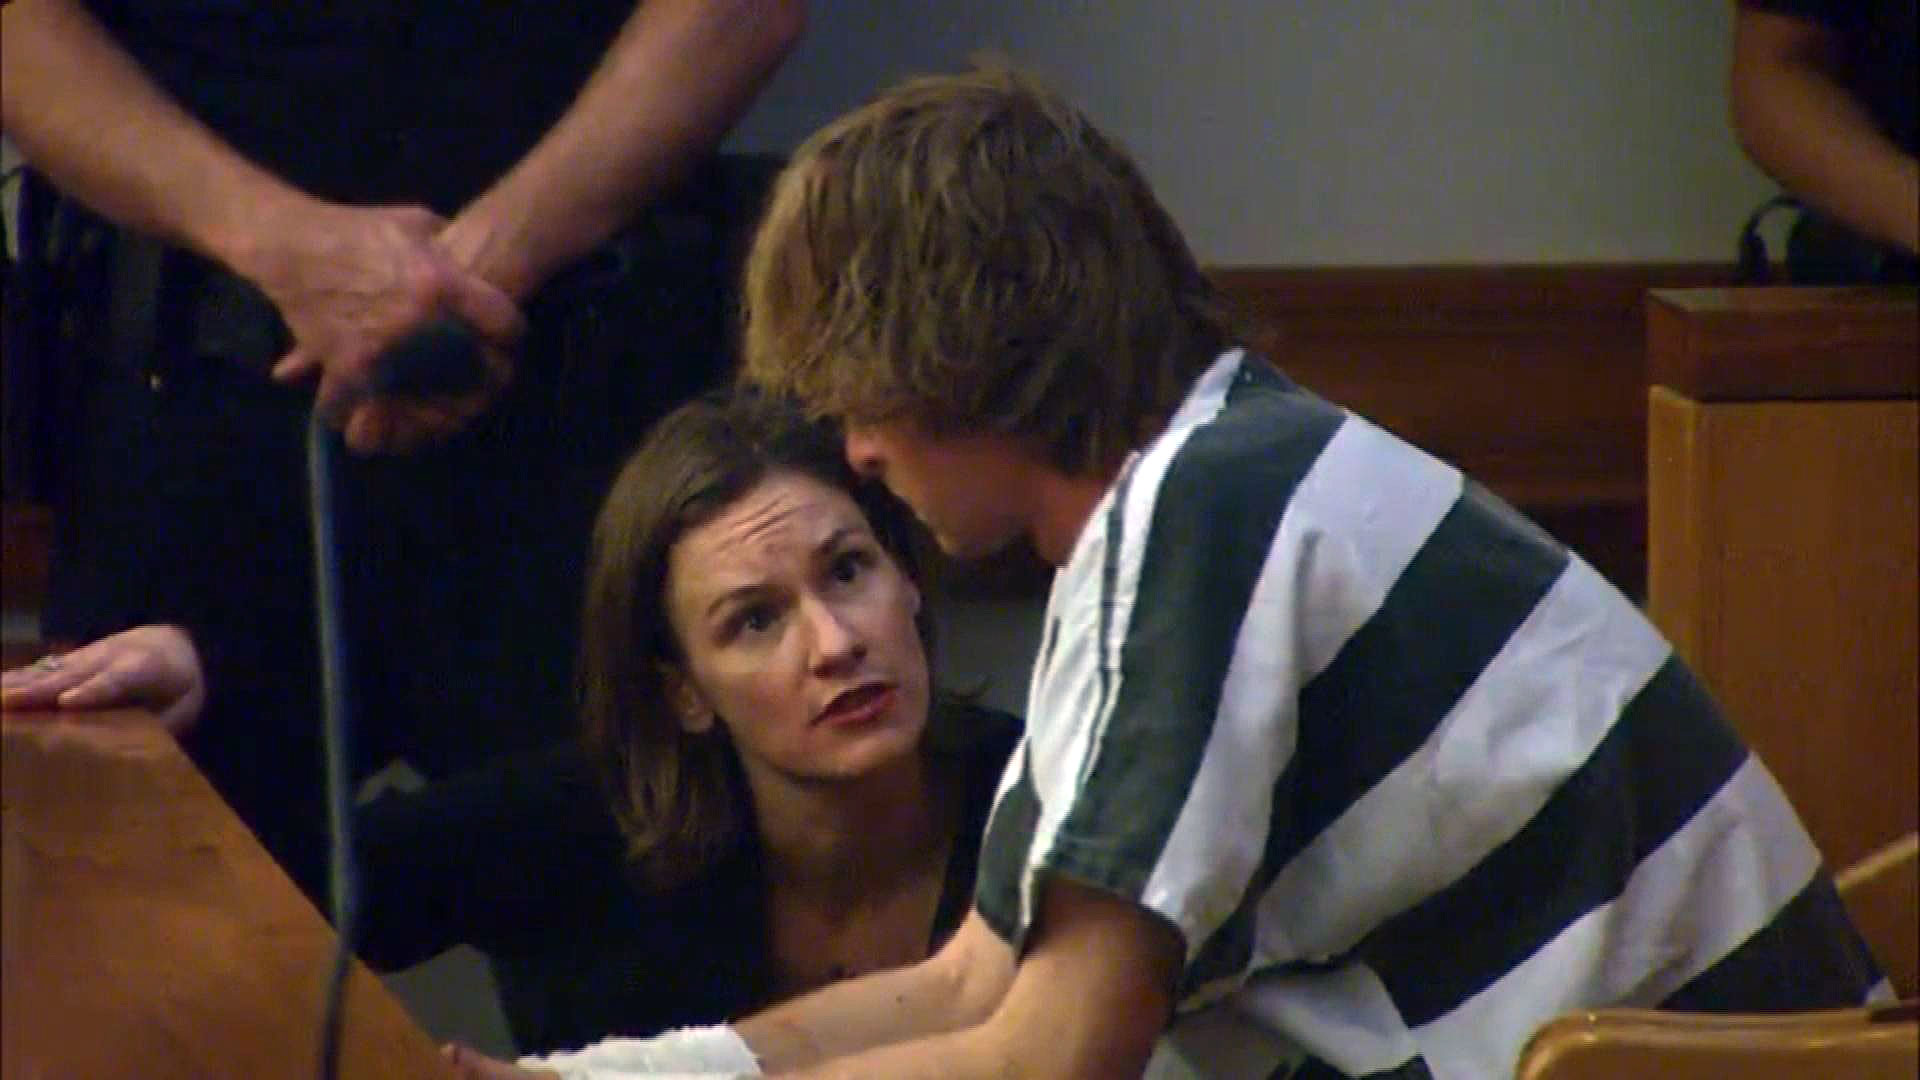 Sky Wodraska in court on March 9 (credit: CBS)